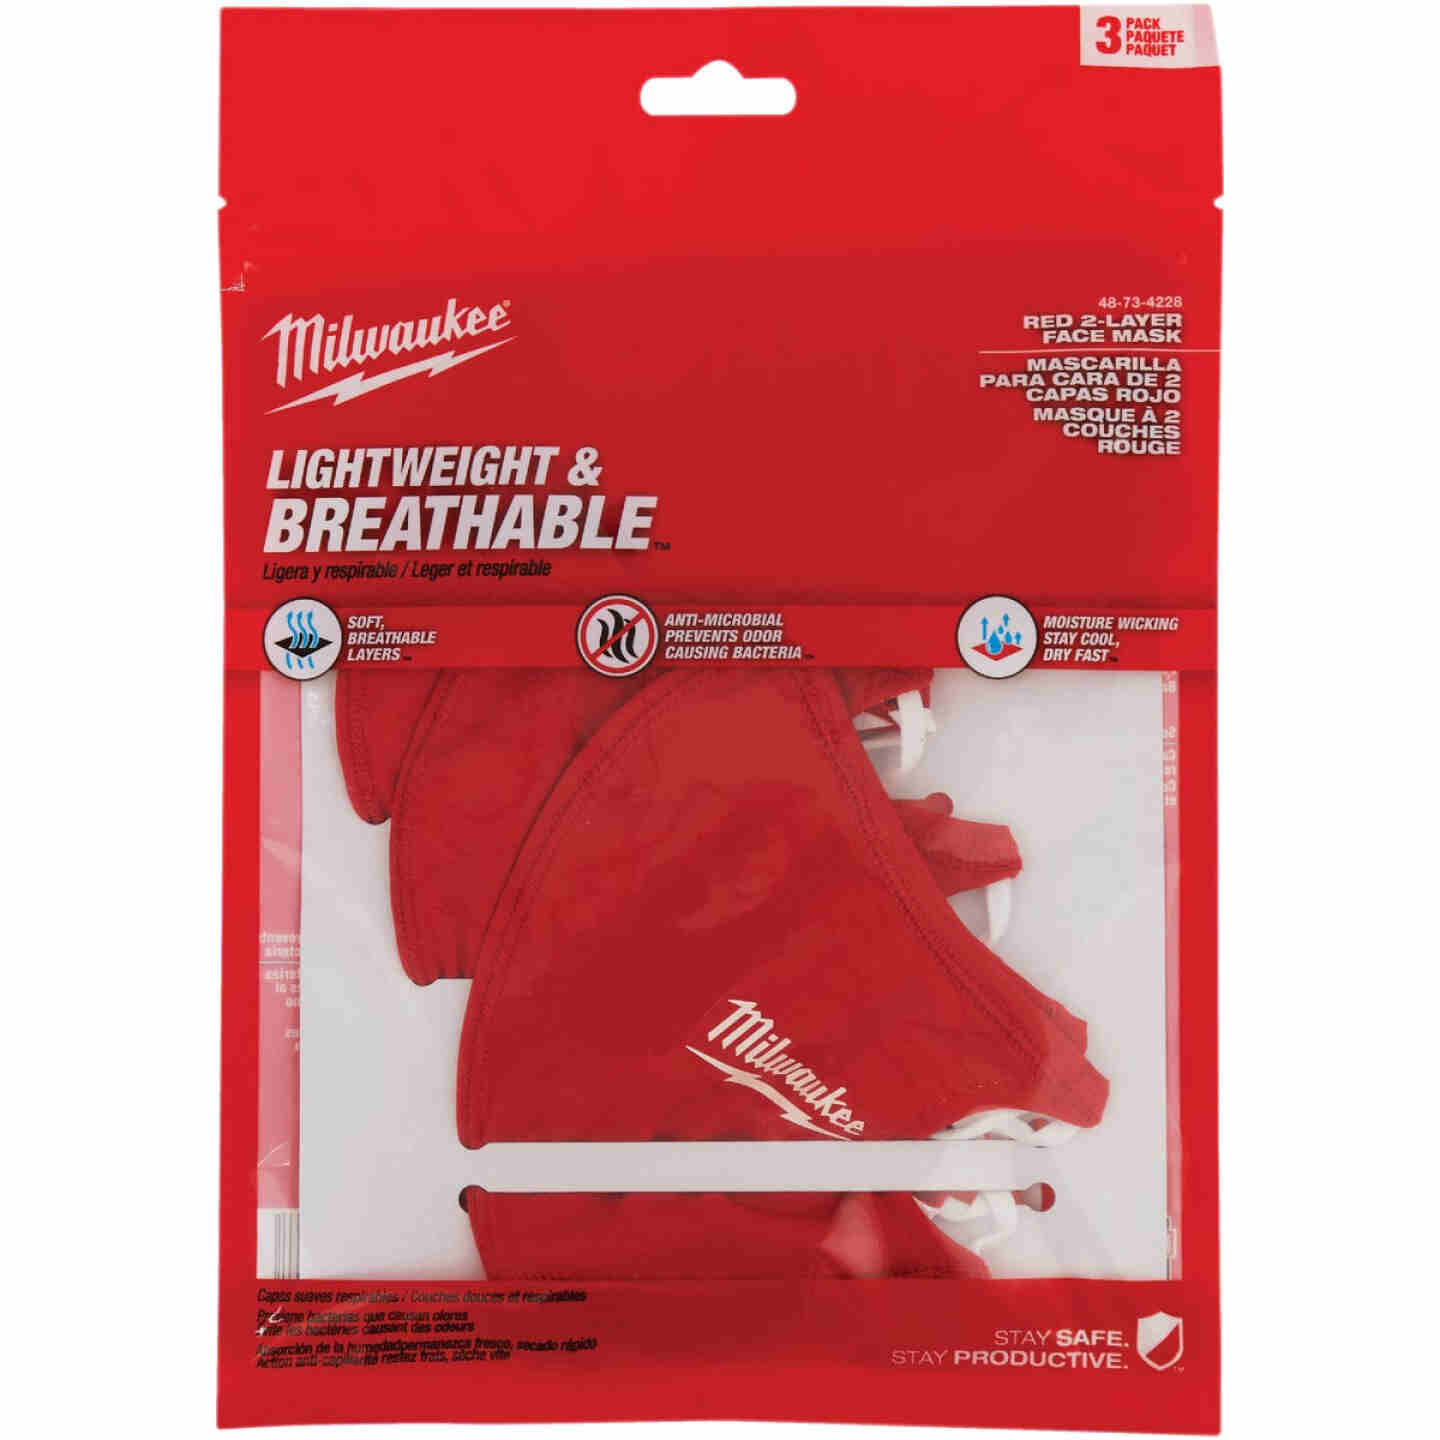 Milwaukee Red 2-Layer Washable Dust & Face Mask (3-Pack) Image 4